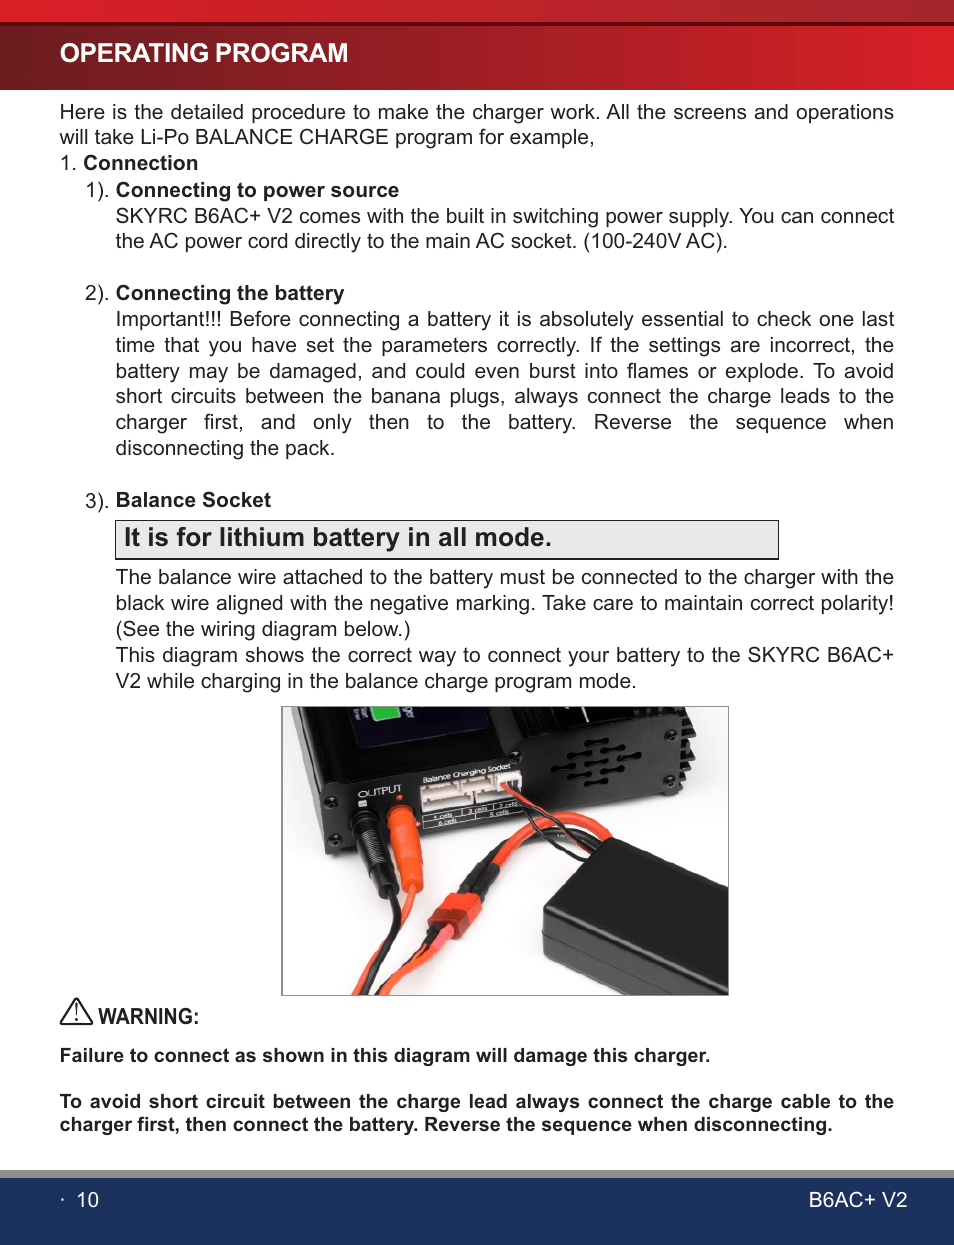 hight resolution of  12 operating program it is for lithium battery in all mode skyrc b6ac v2 charger user manual page 12 28